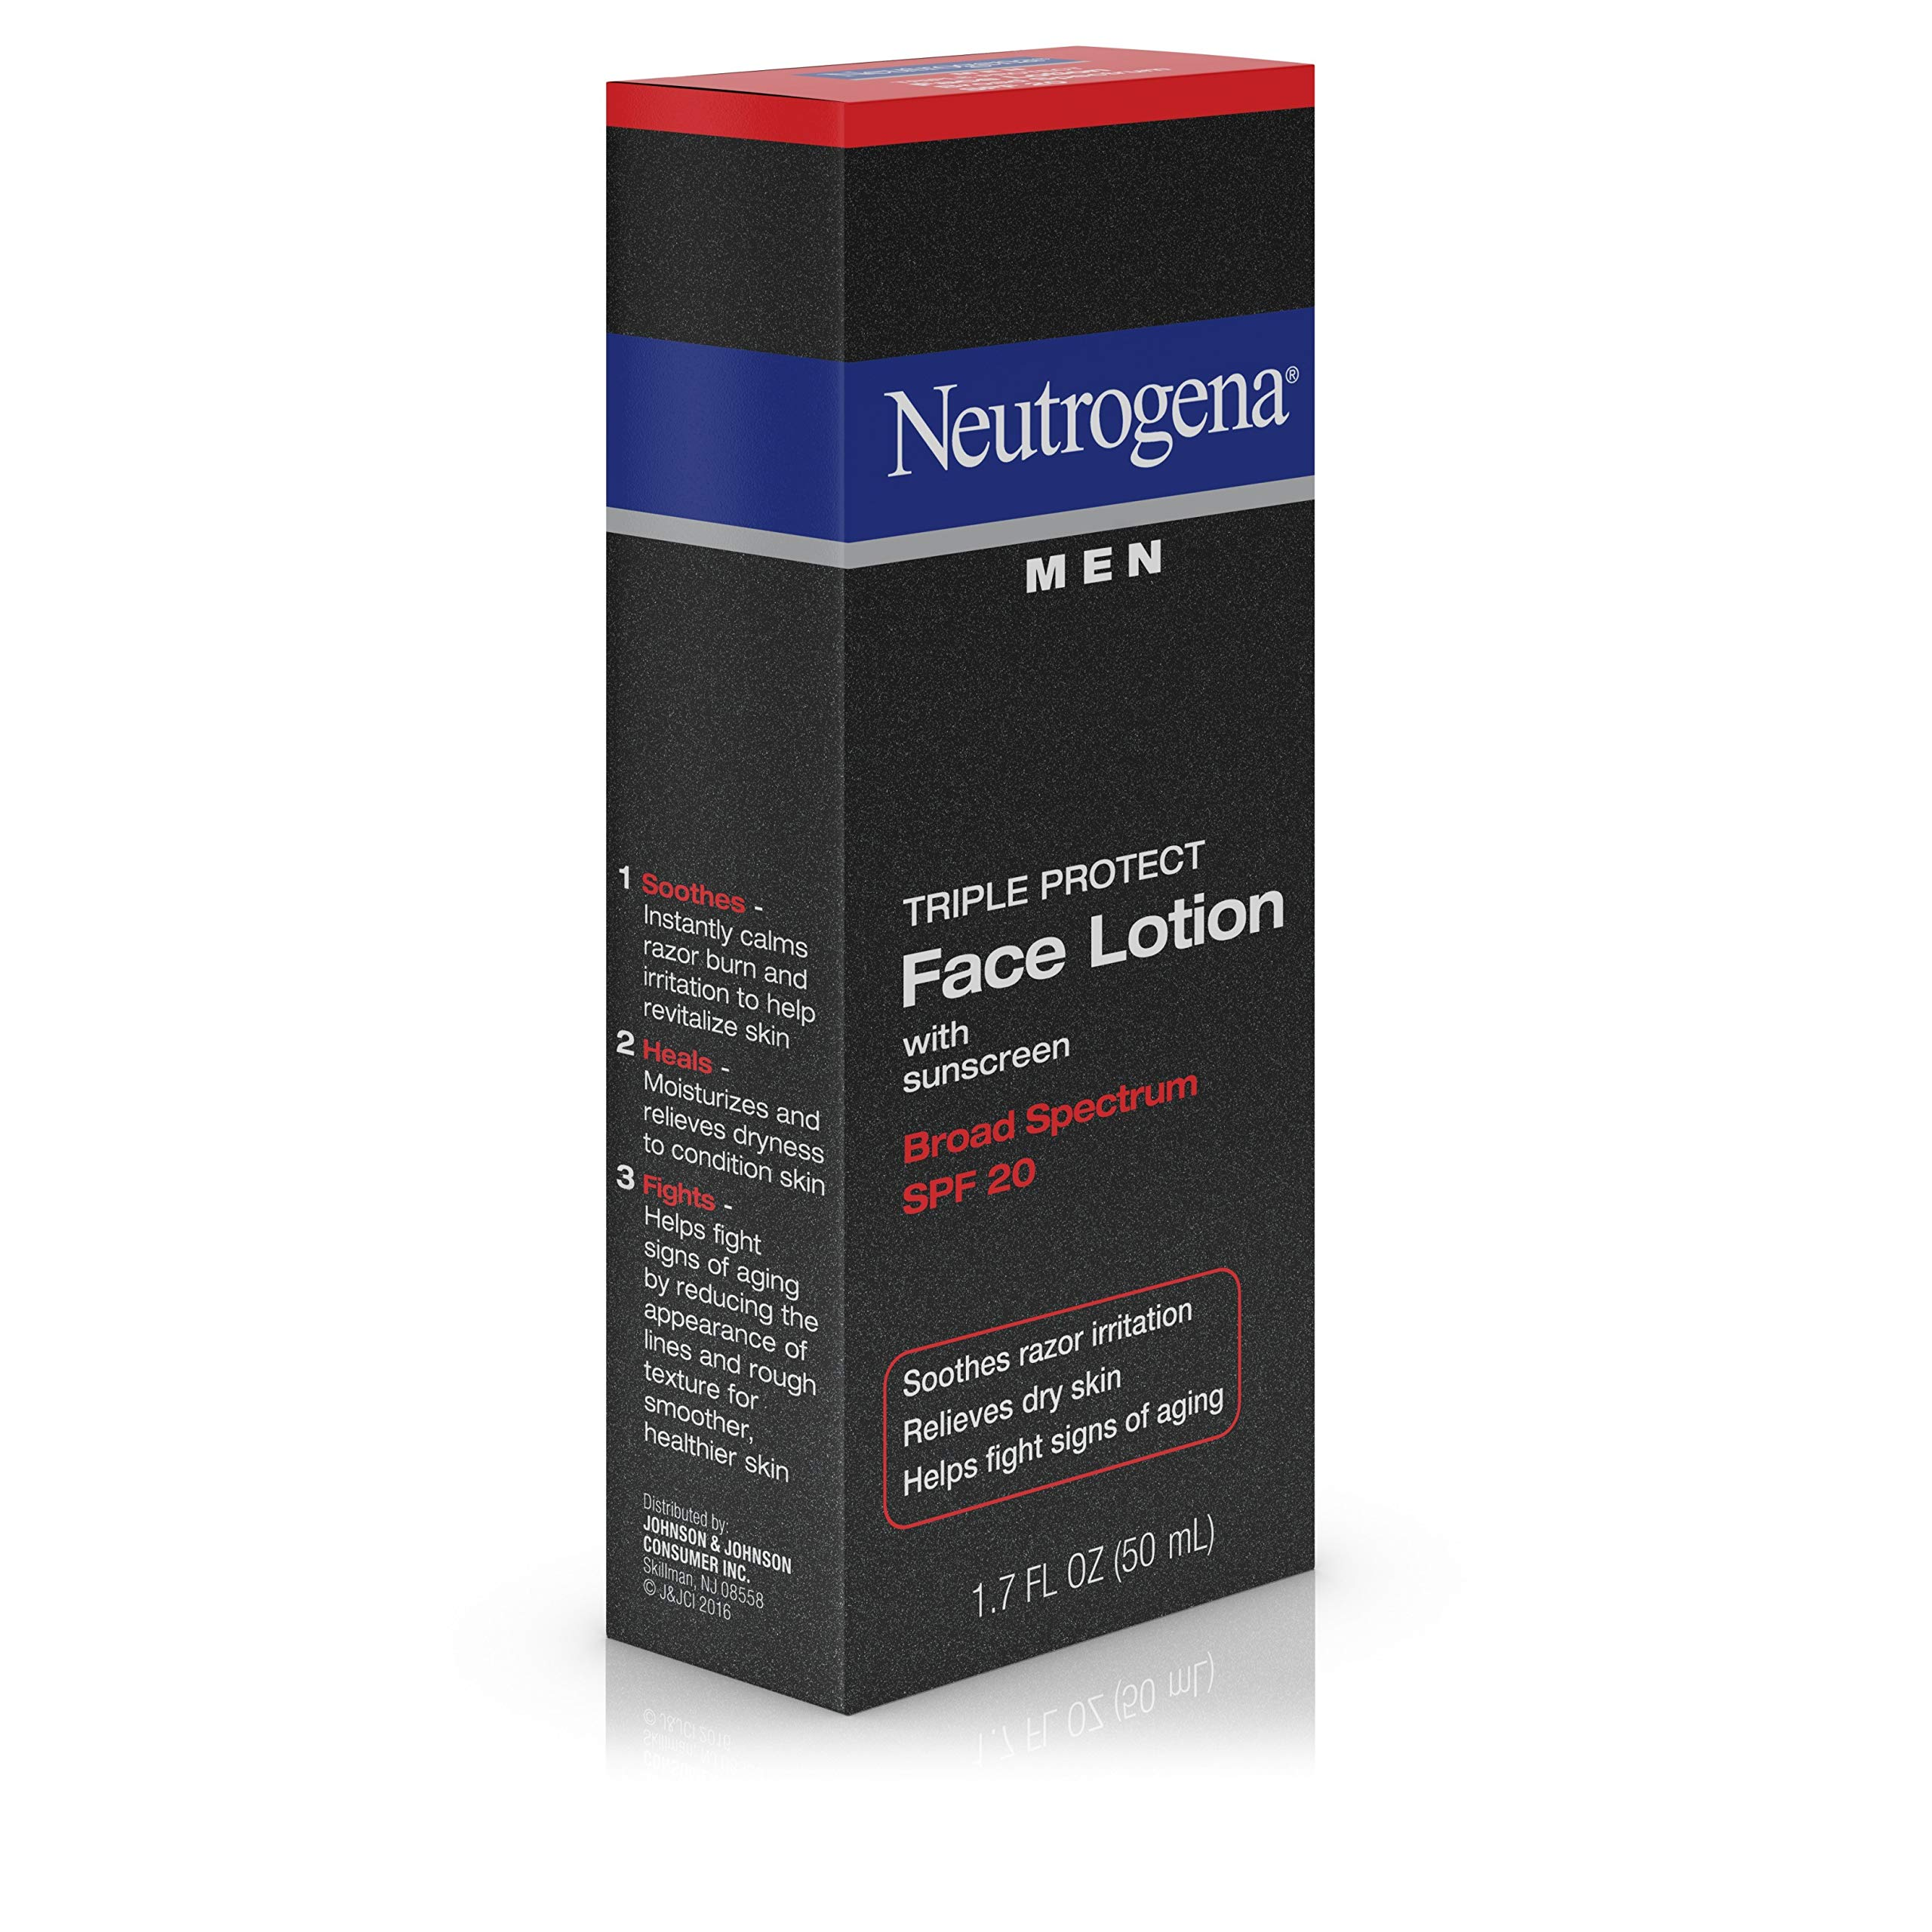 Neutrogena Triple Protect Men's Daily Face Lotion with Broad Spectrum SPF 20 Sunscreen, Moisturizer to Fight Aging Signs, Soothe Razor Irritation & Relieve Dry Skin, 1.7 fl. Oz (Pack of 2) by Neutrogena (Image #3)